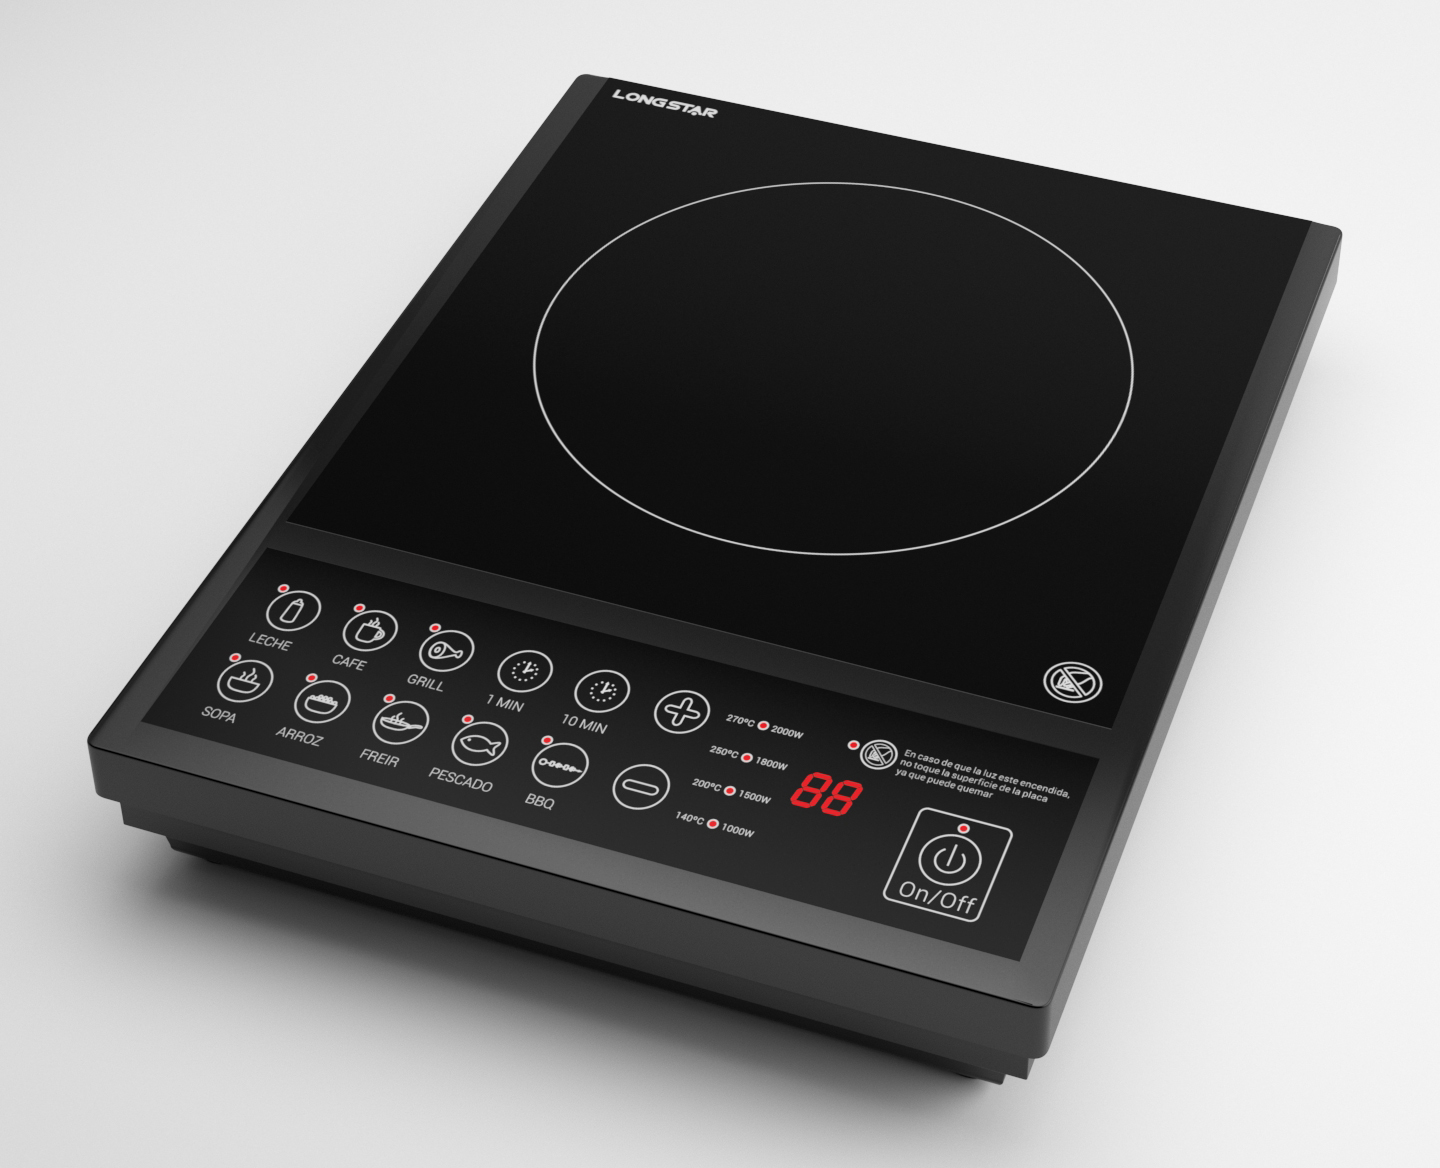 New Best Selling Model Induction Cooker with Ce Certificate